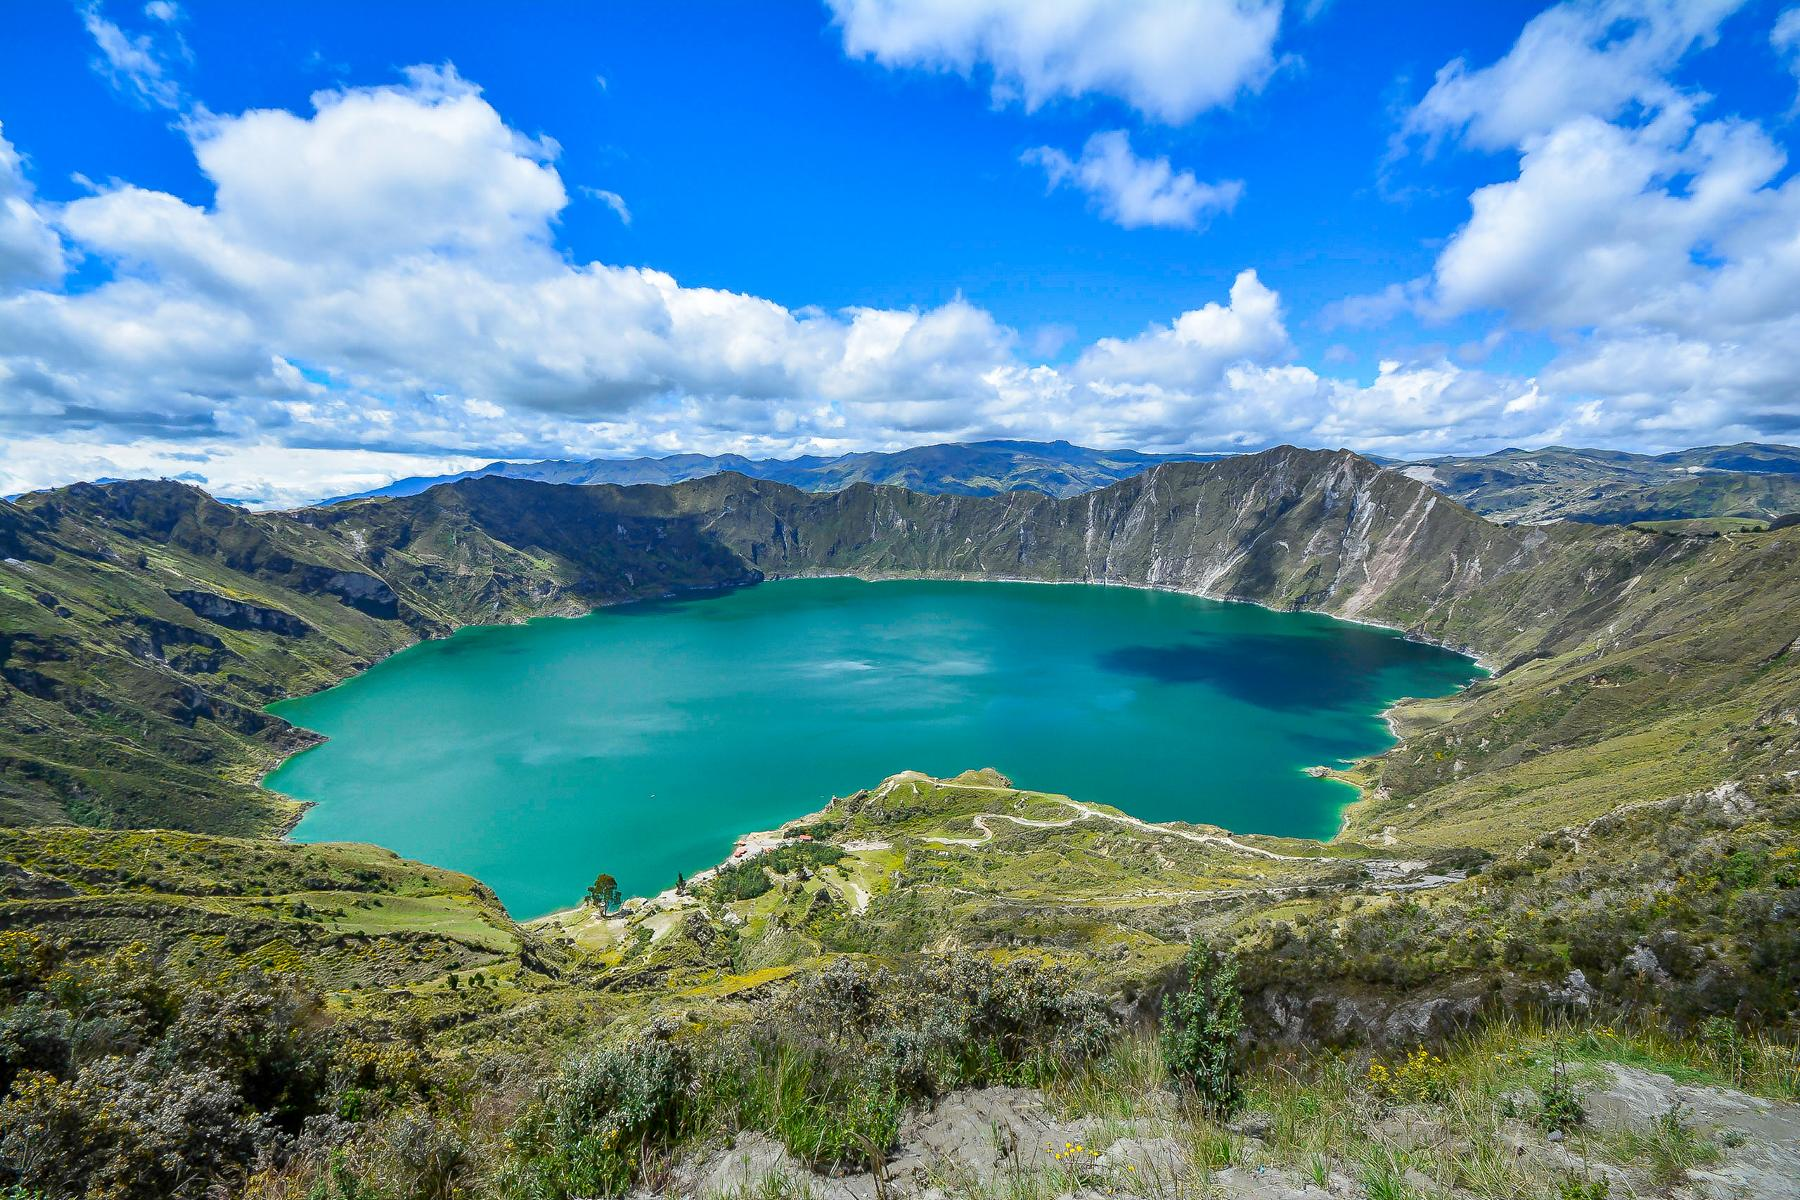 Rundreise - K1600_Quilotoa-Ecuador-lagoon-in-volcano-with-turquoise-water.-shutterstock_651962659.jpg